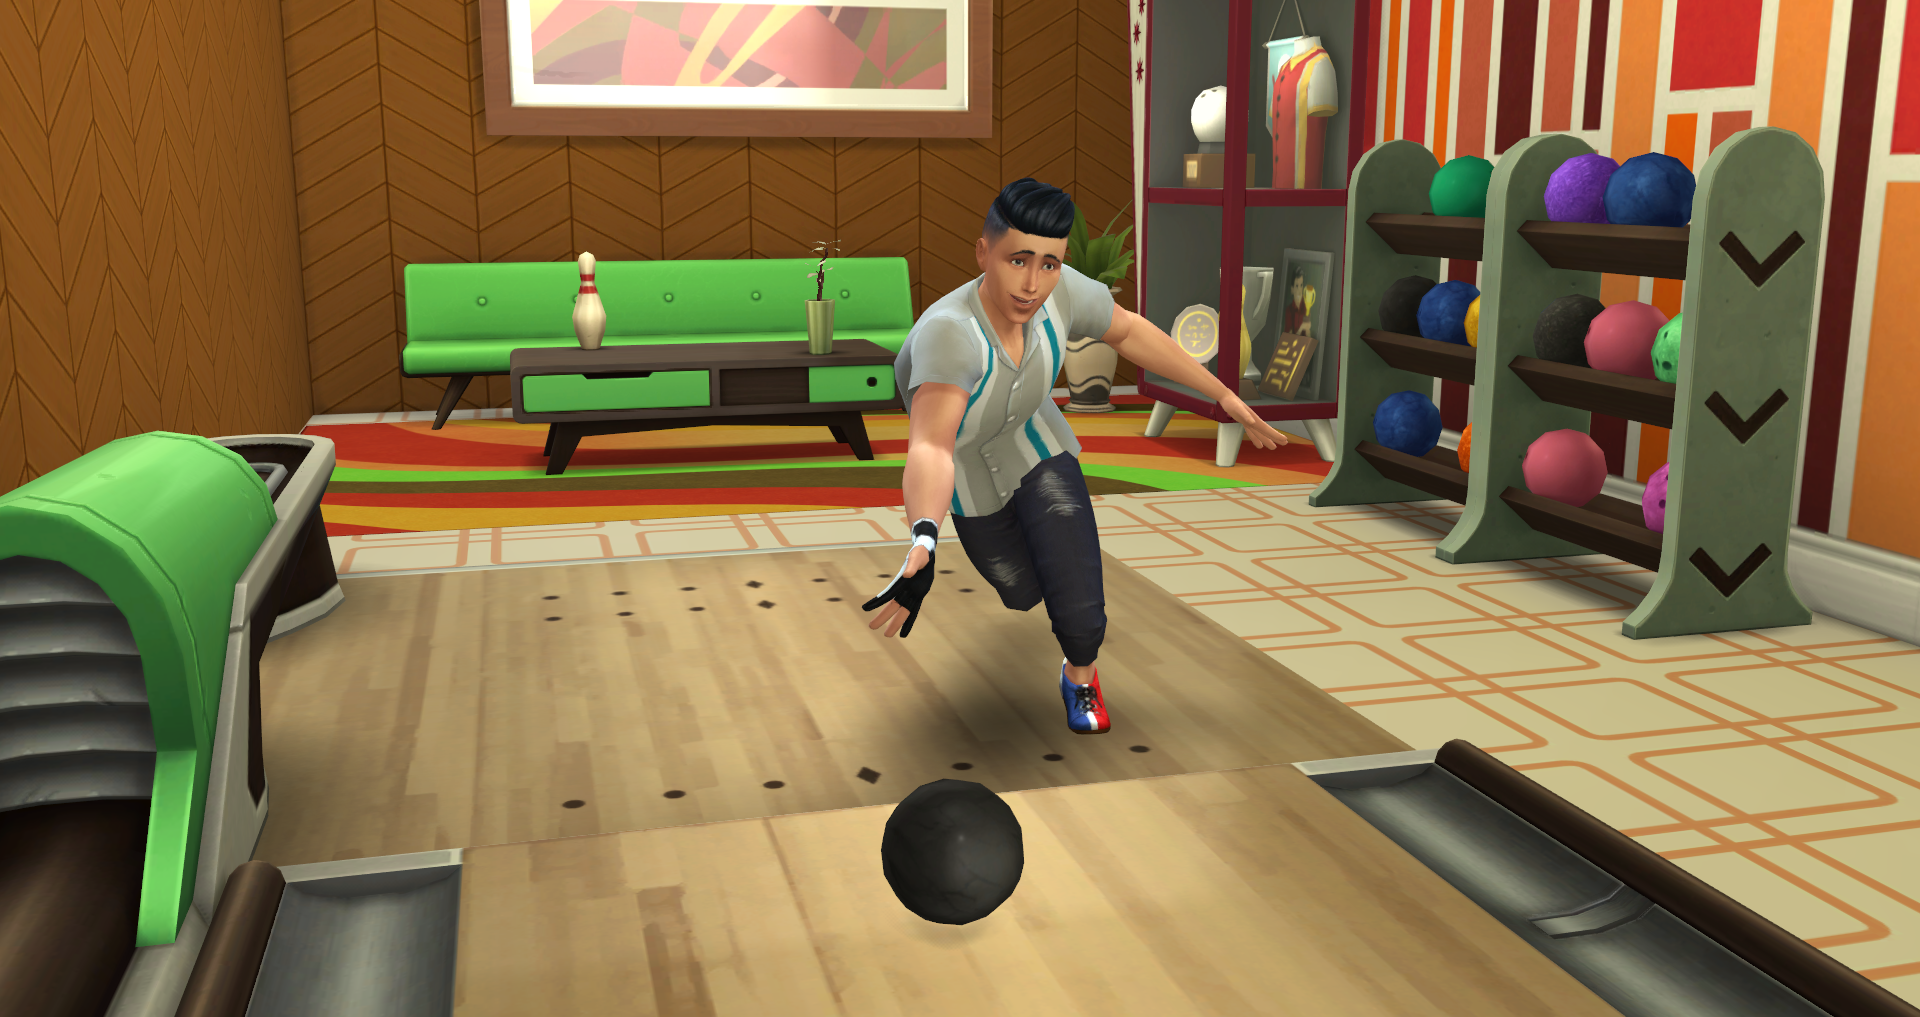 Sims 4 Bowling Night Game Guide